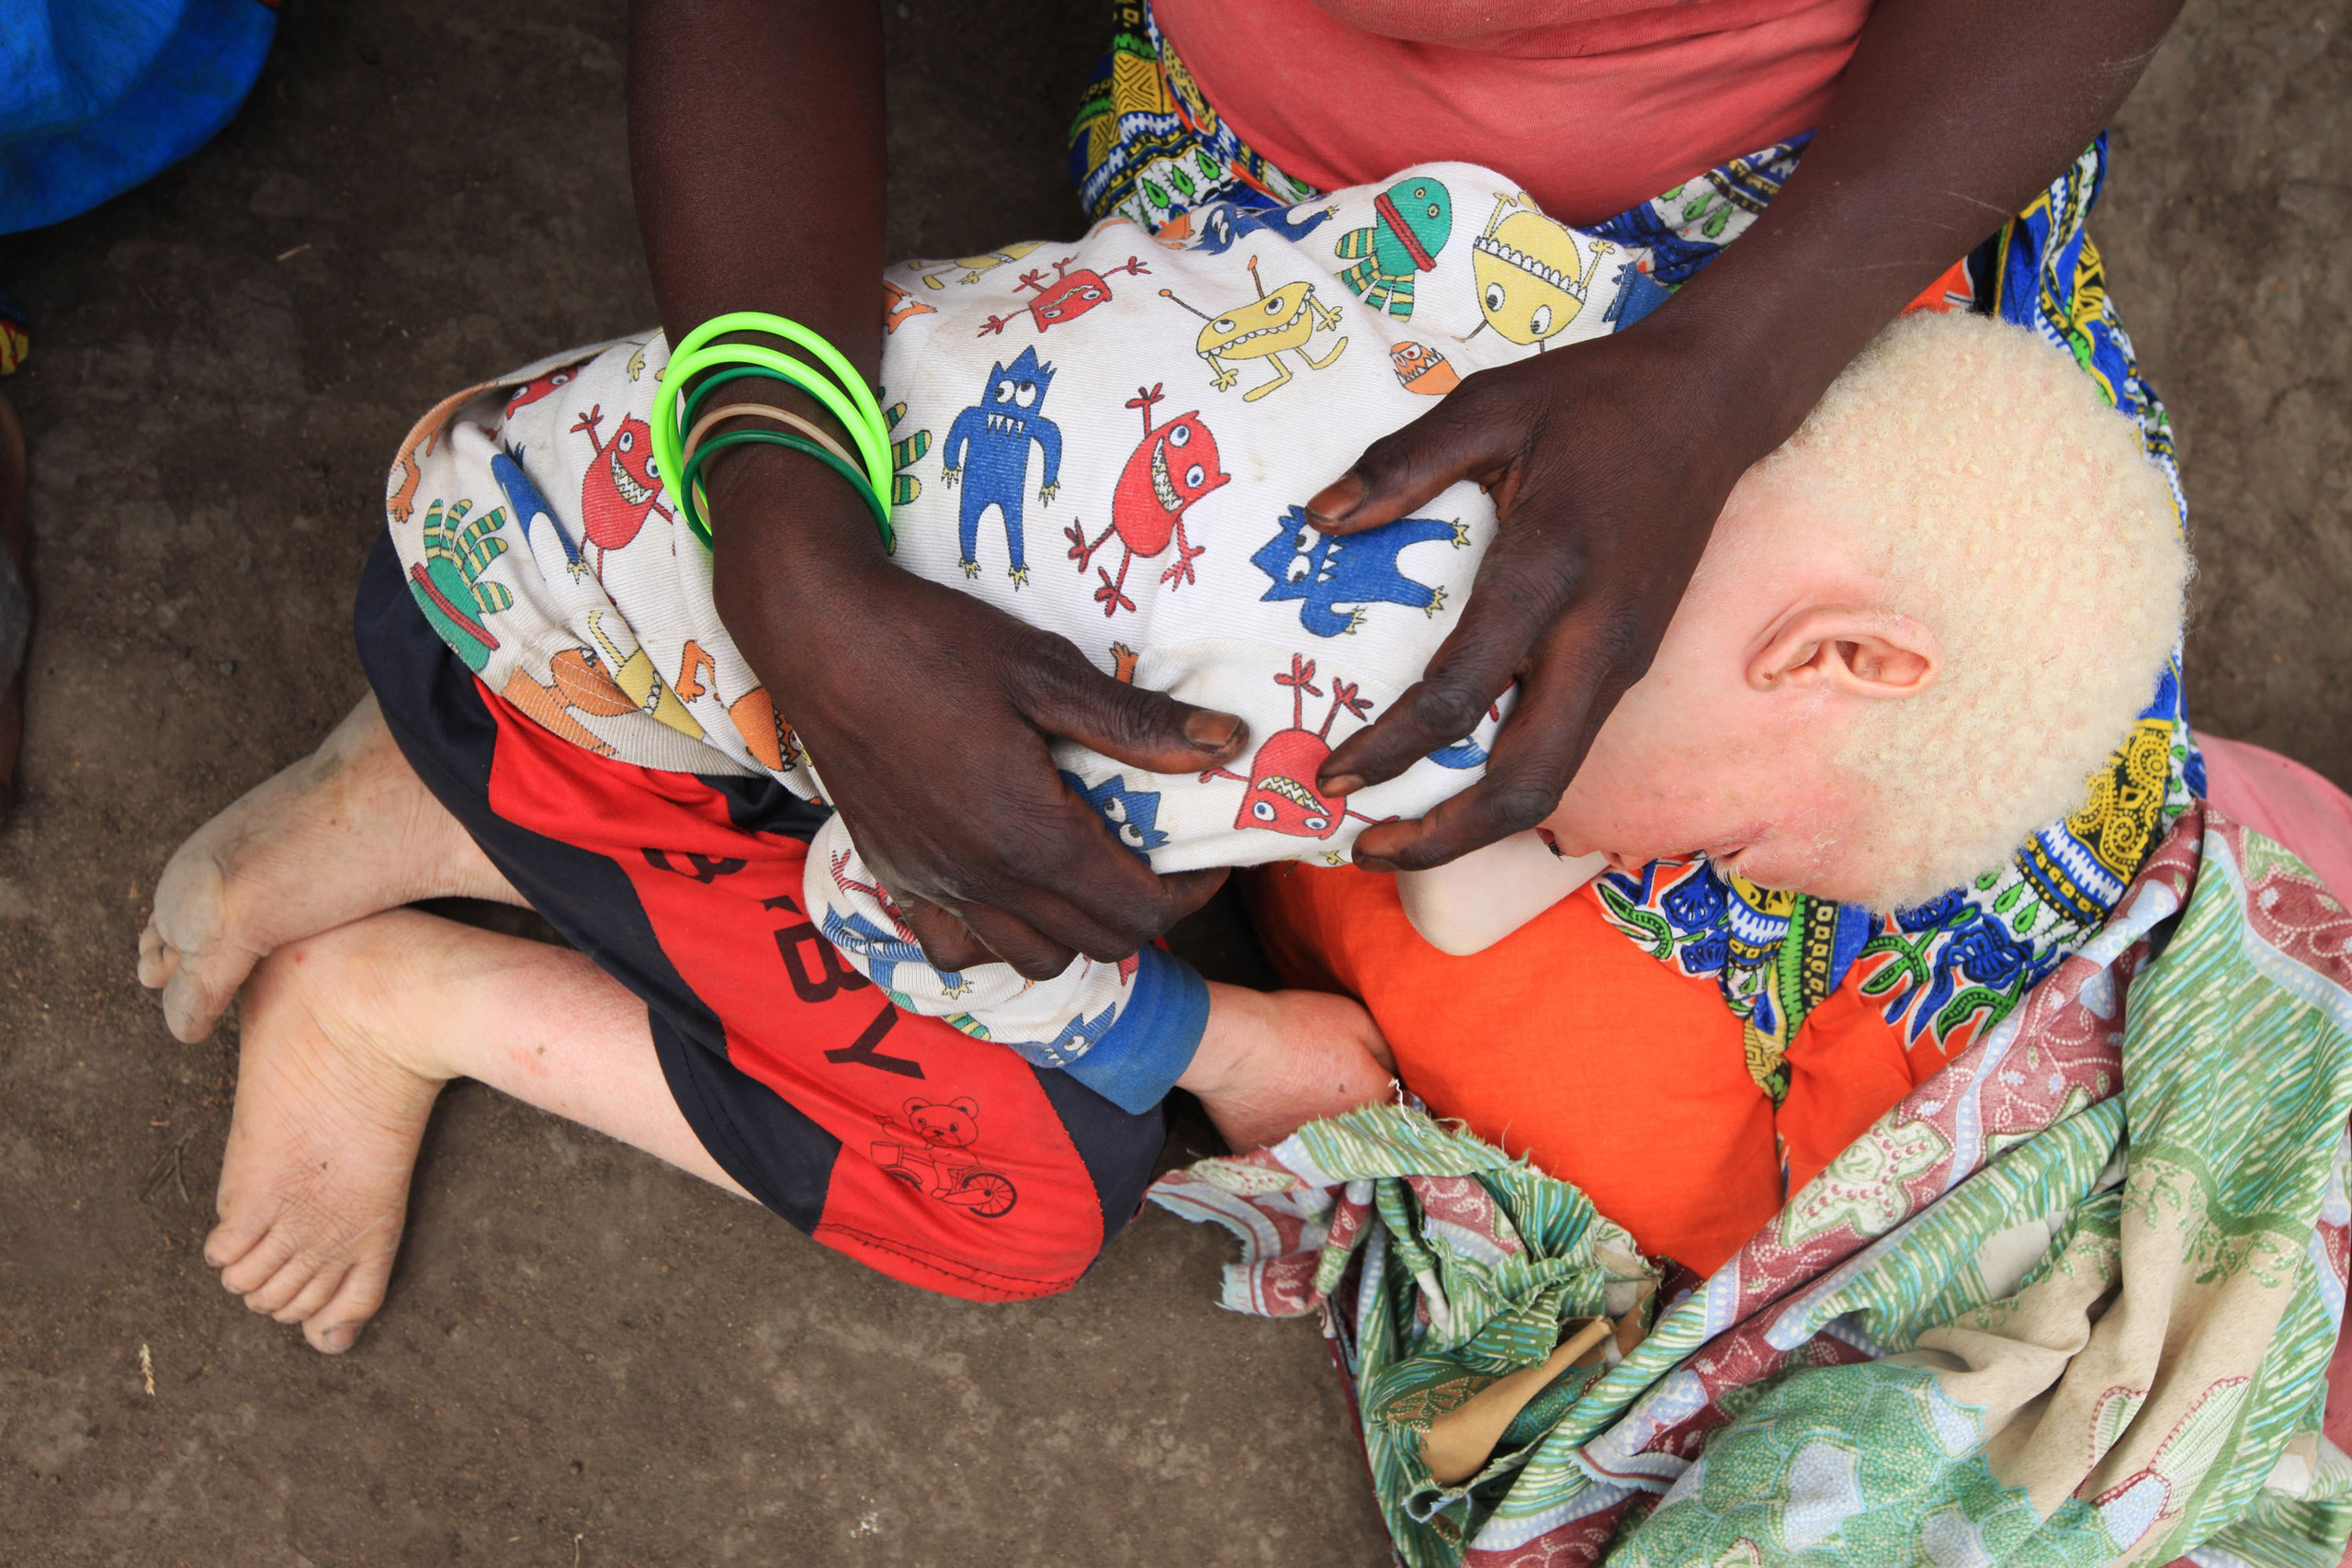 Edna Cedrick, 26, holds her surviving albino son after his twin brother who had albinism was snatched from her arms,  in Machinga north east of Blantyre, Malawi, May, 24, 2016.